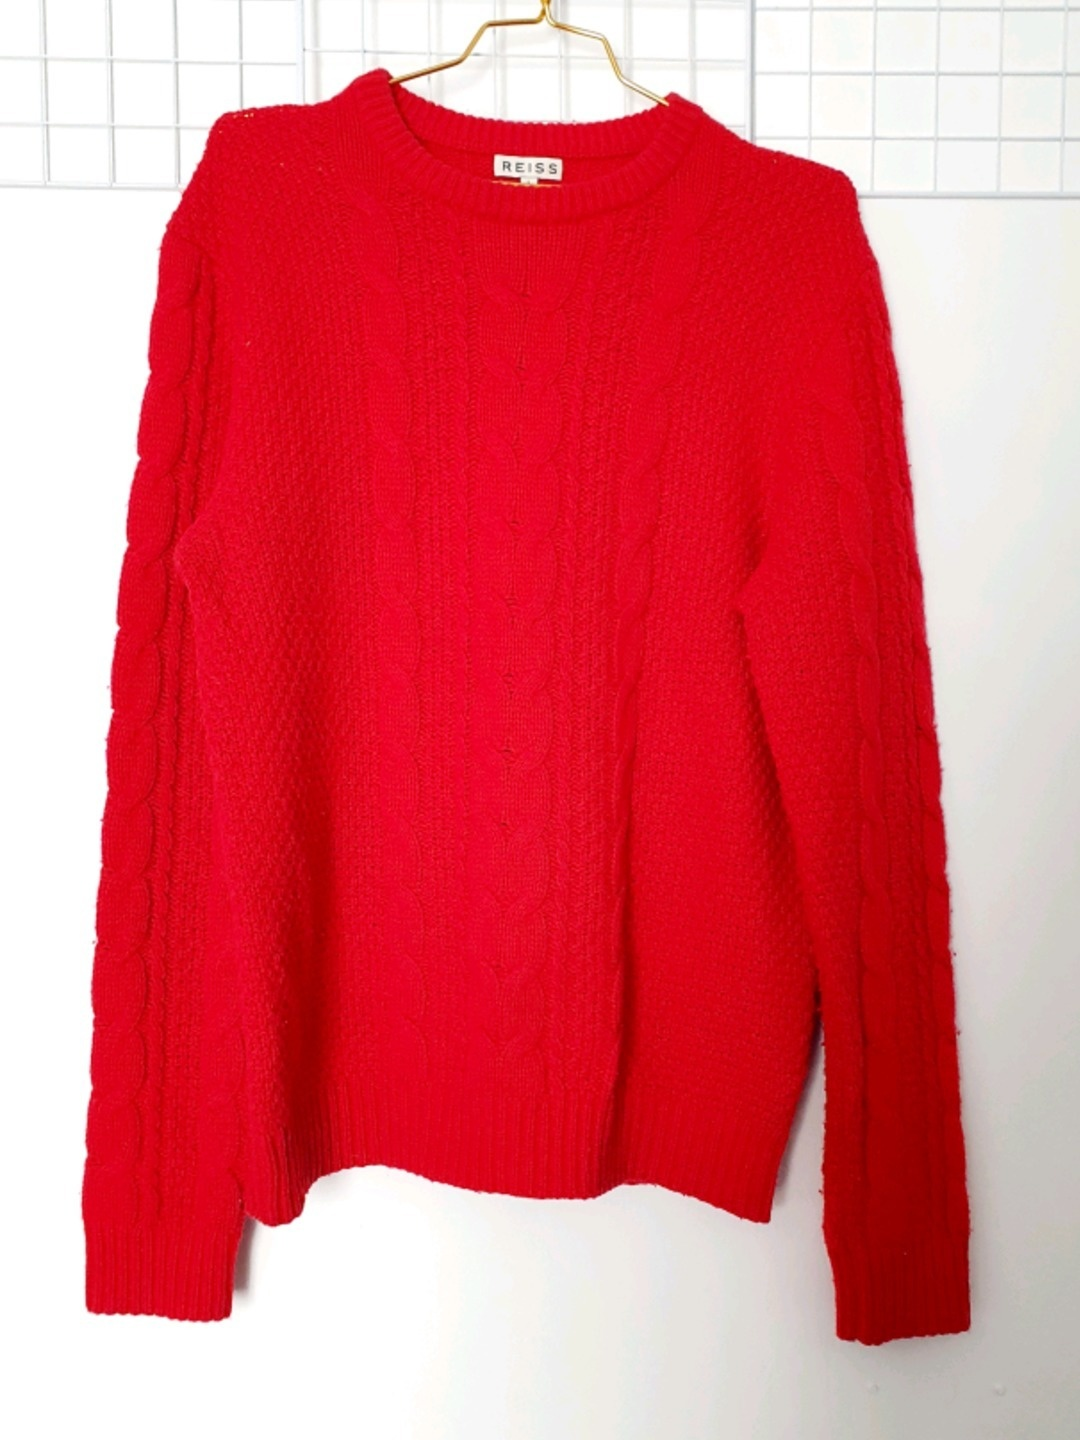 Women's jumpers & cardigans - REISS photo 1